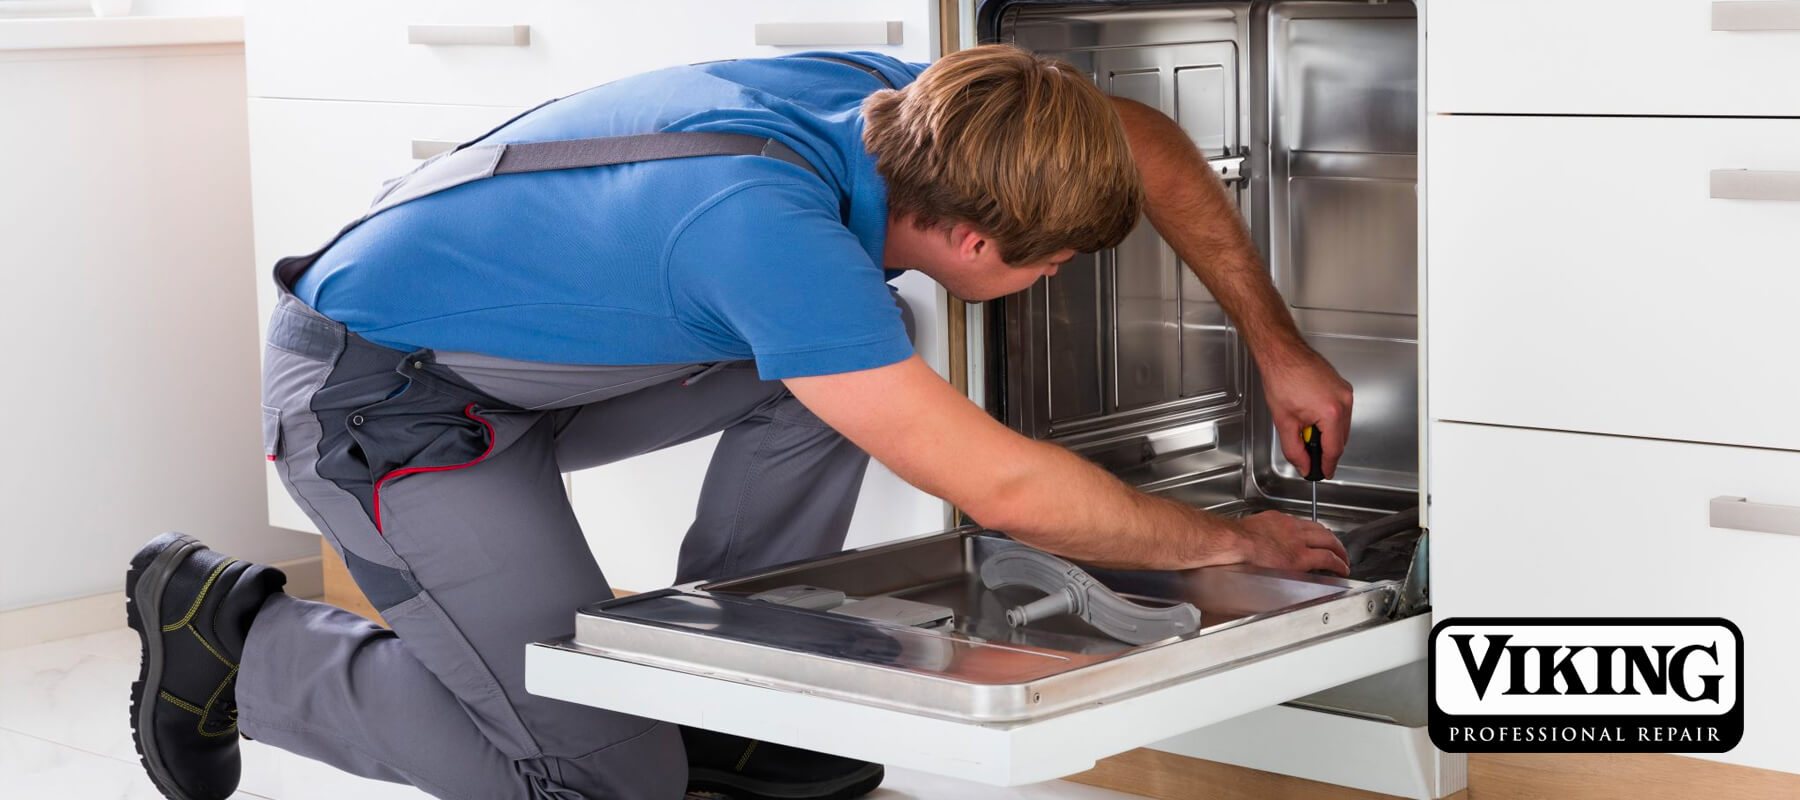 Viking Dishwasher Repair Near Me | Professional Viking Repair